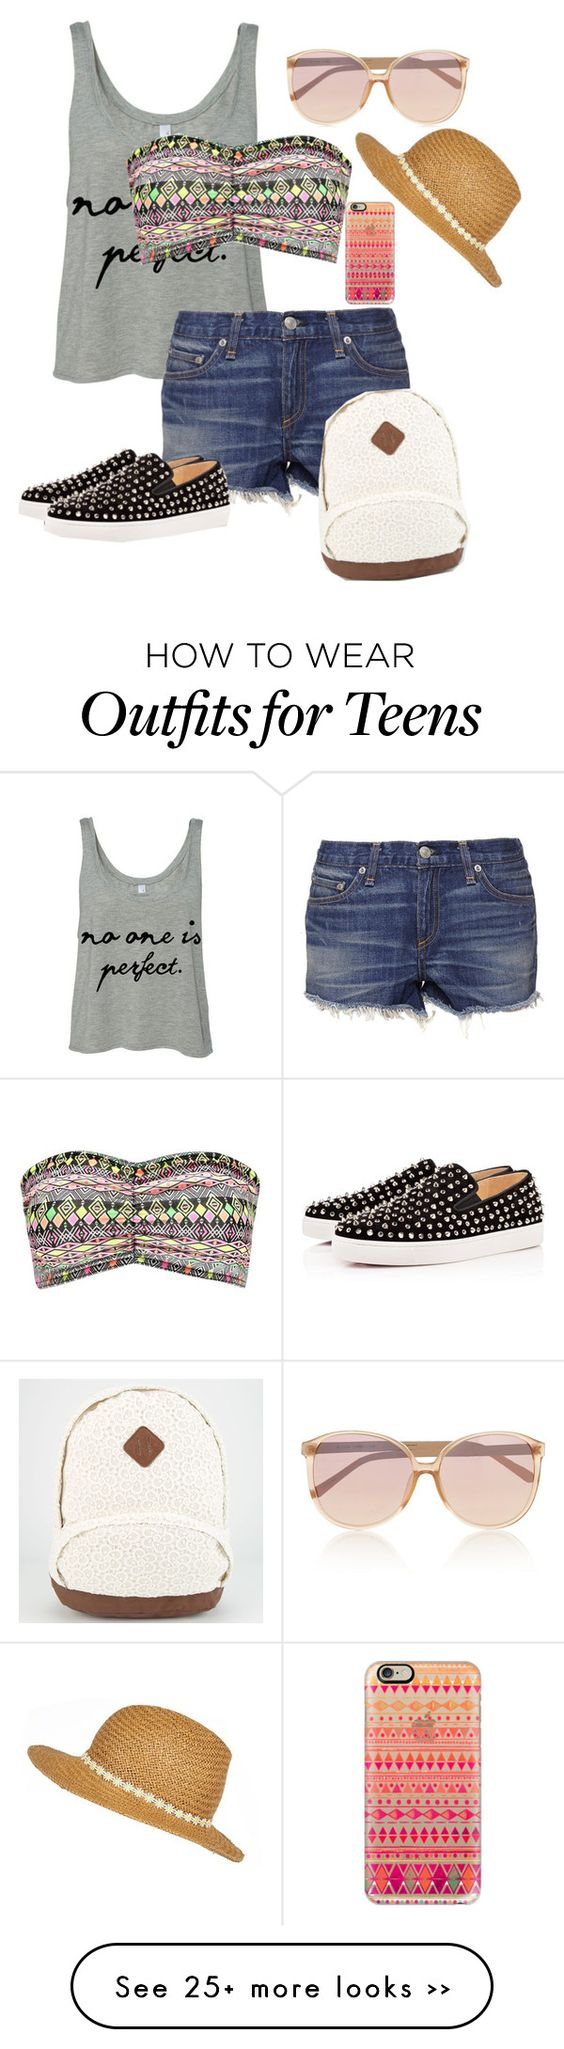 """Summer Outfits for teens"" by leilaaudrinae on Polyvore:"